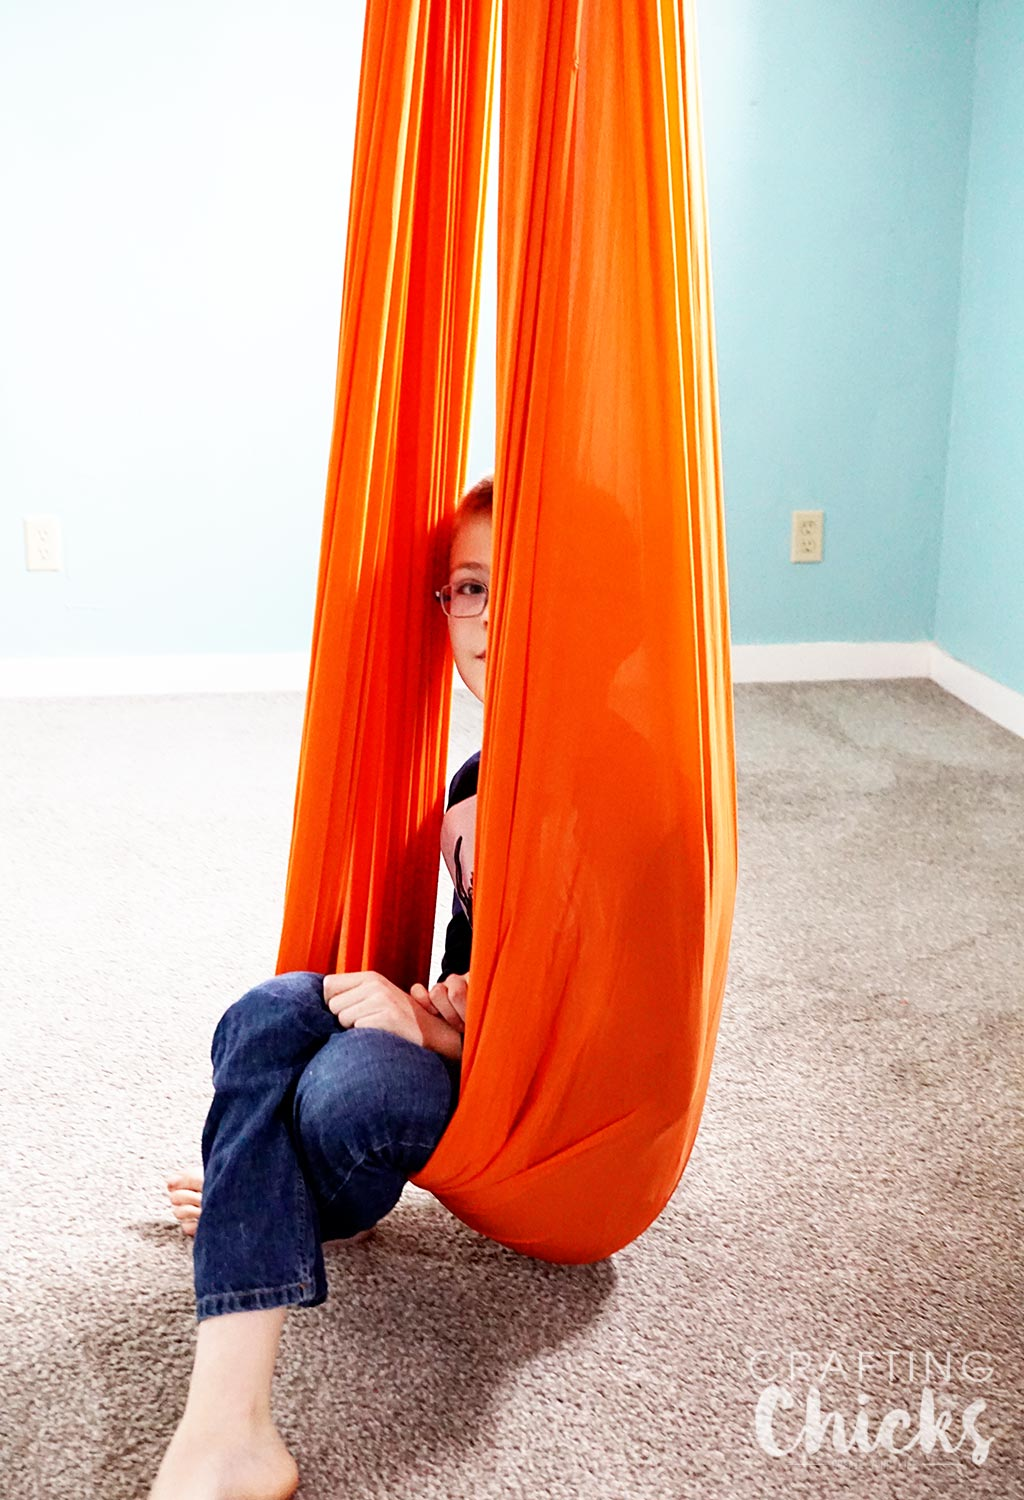 SPD Therapy Swing - What you need to set up a therapy gym at home for sensory processing disorder.